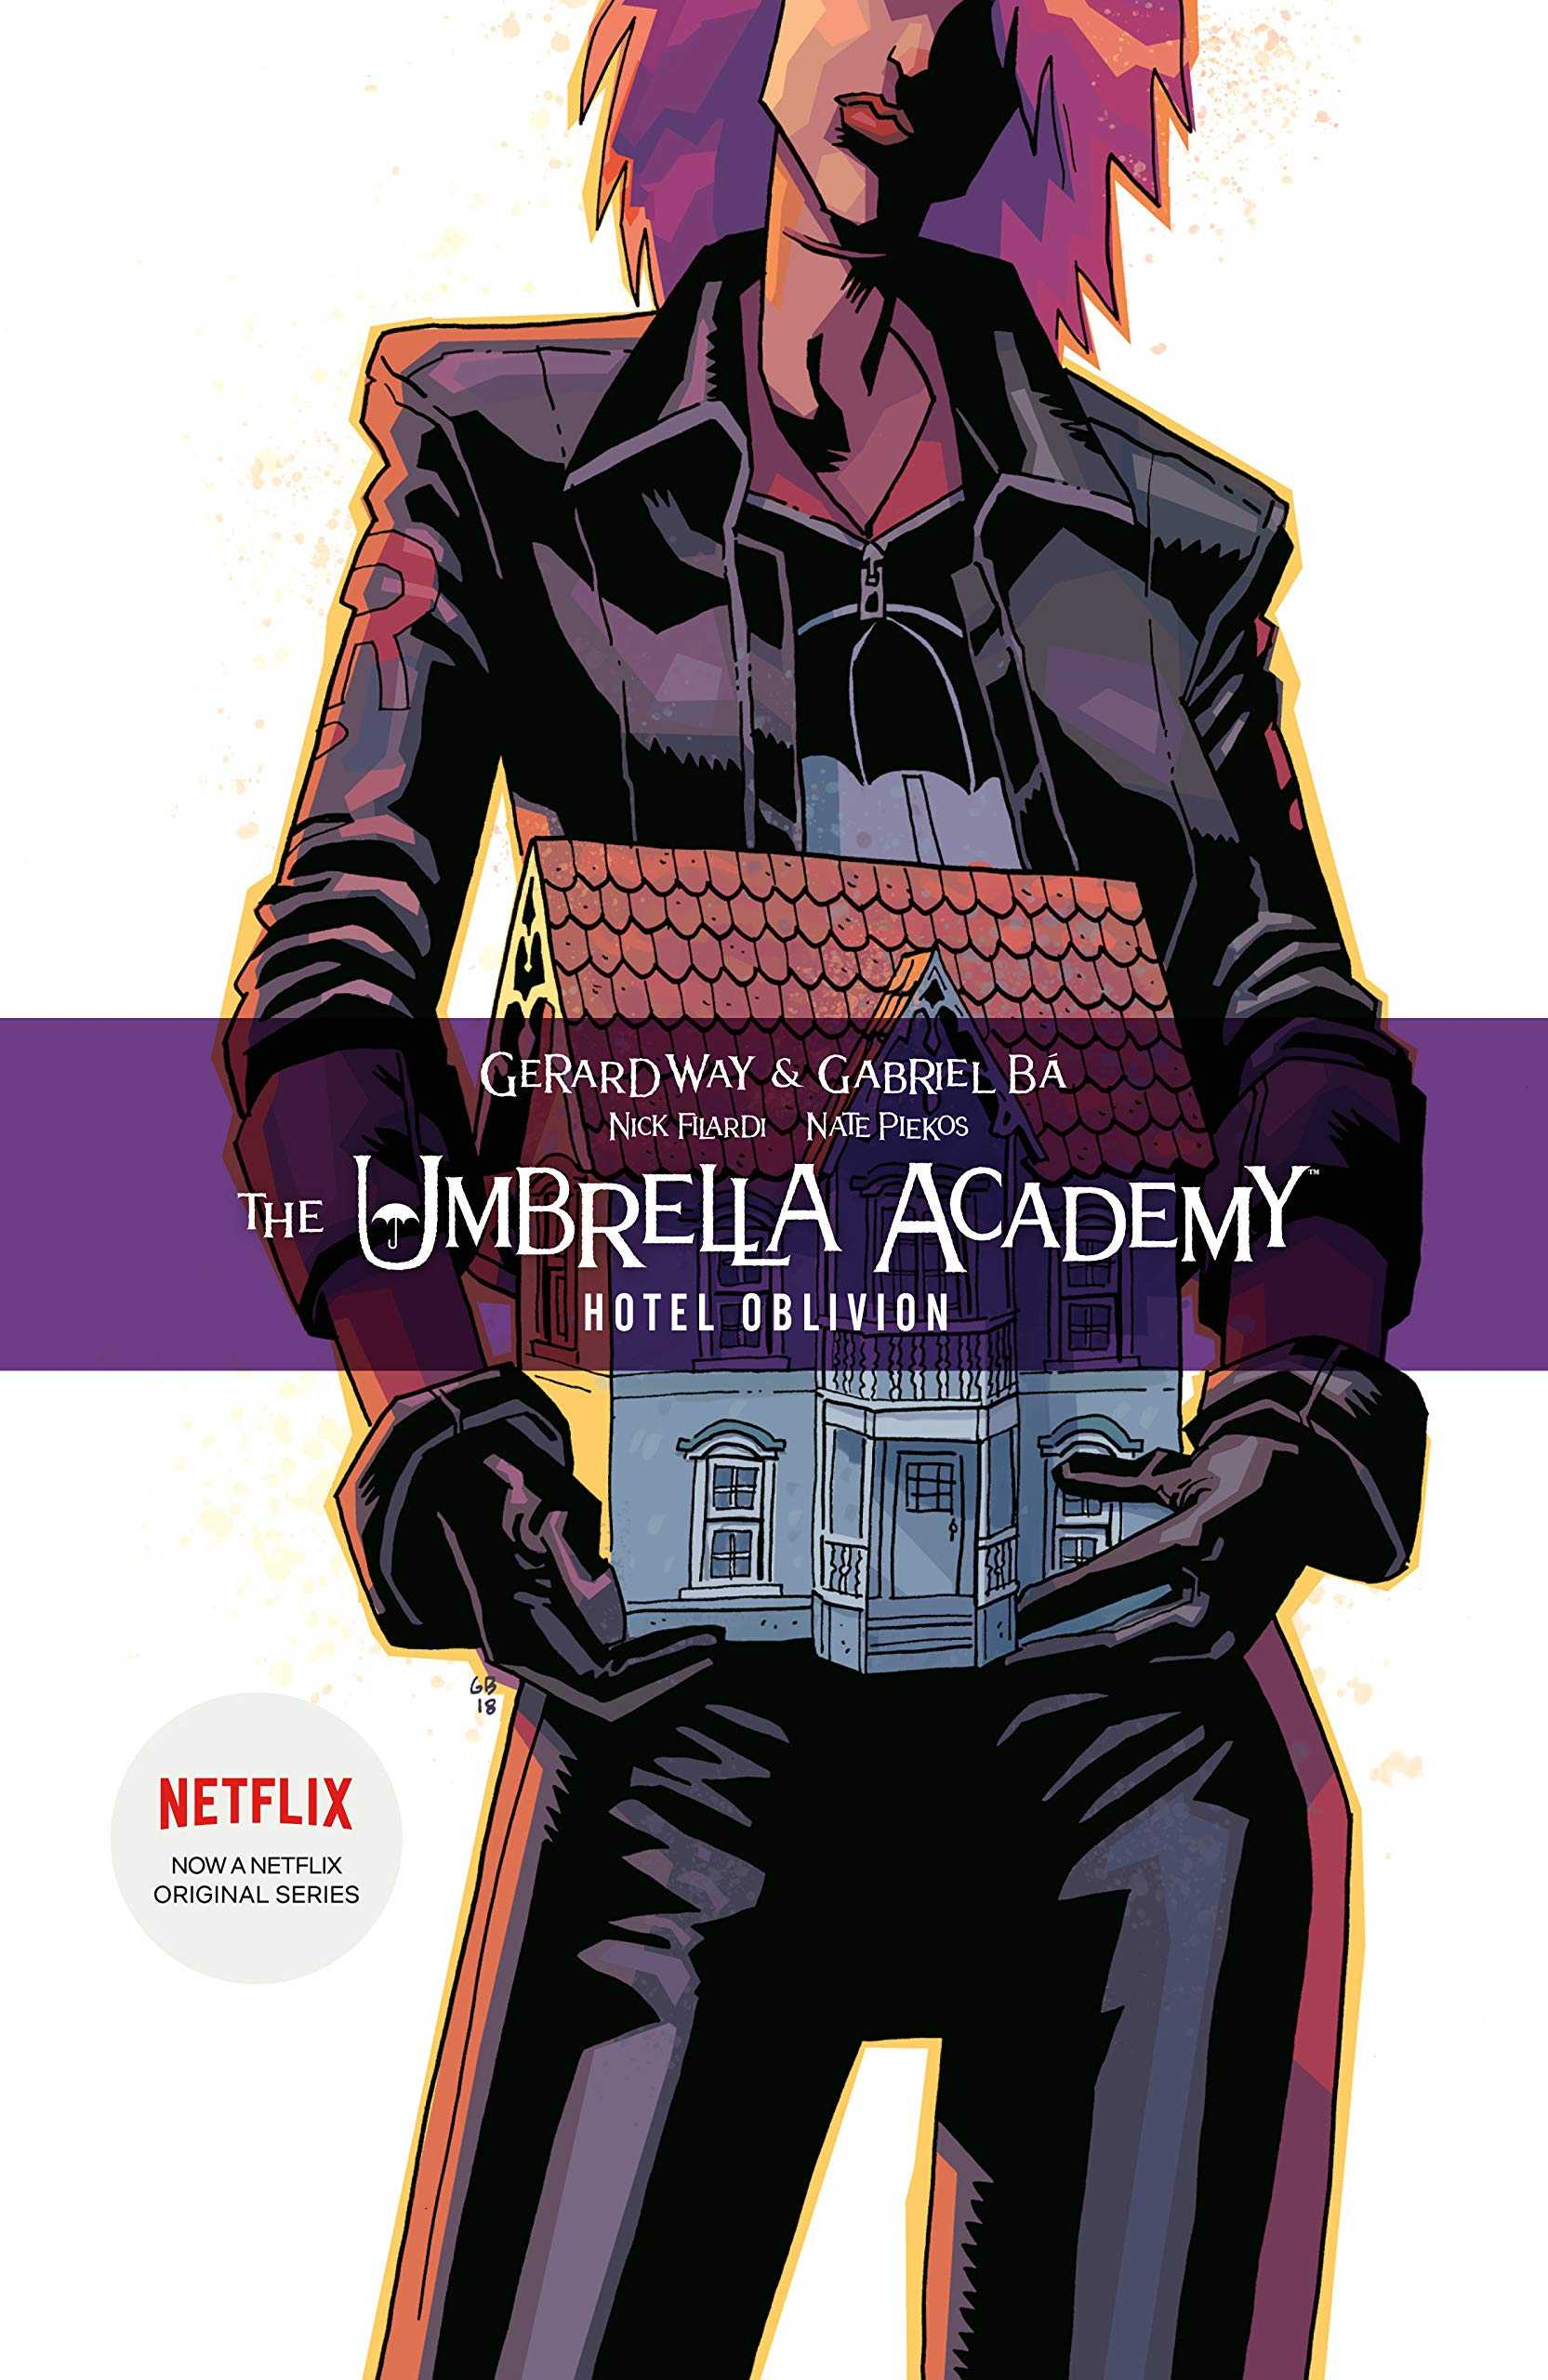 Umbrella Academy Wallpaper 1